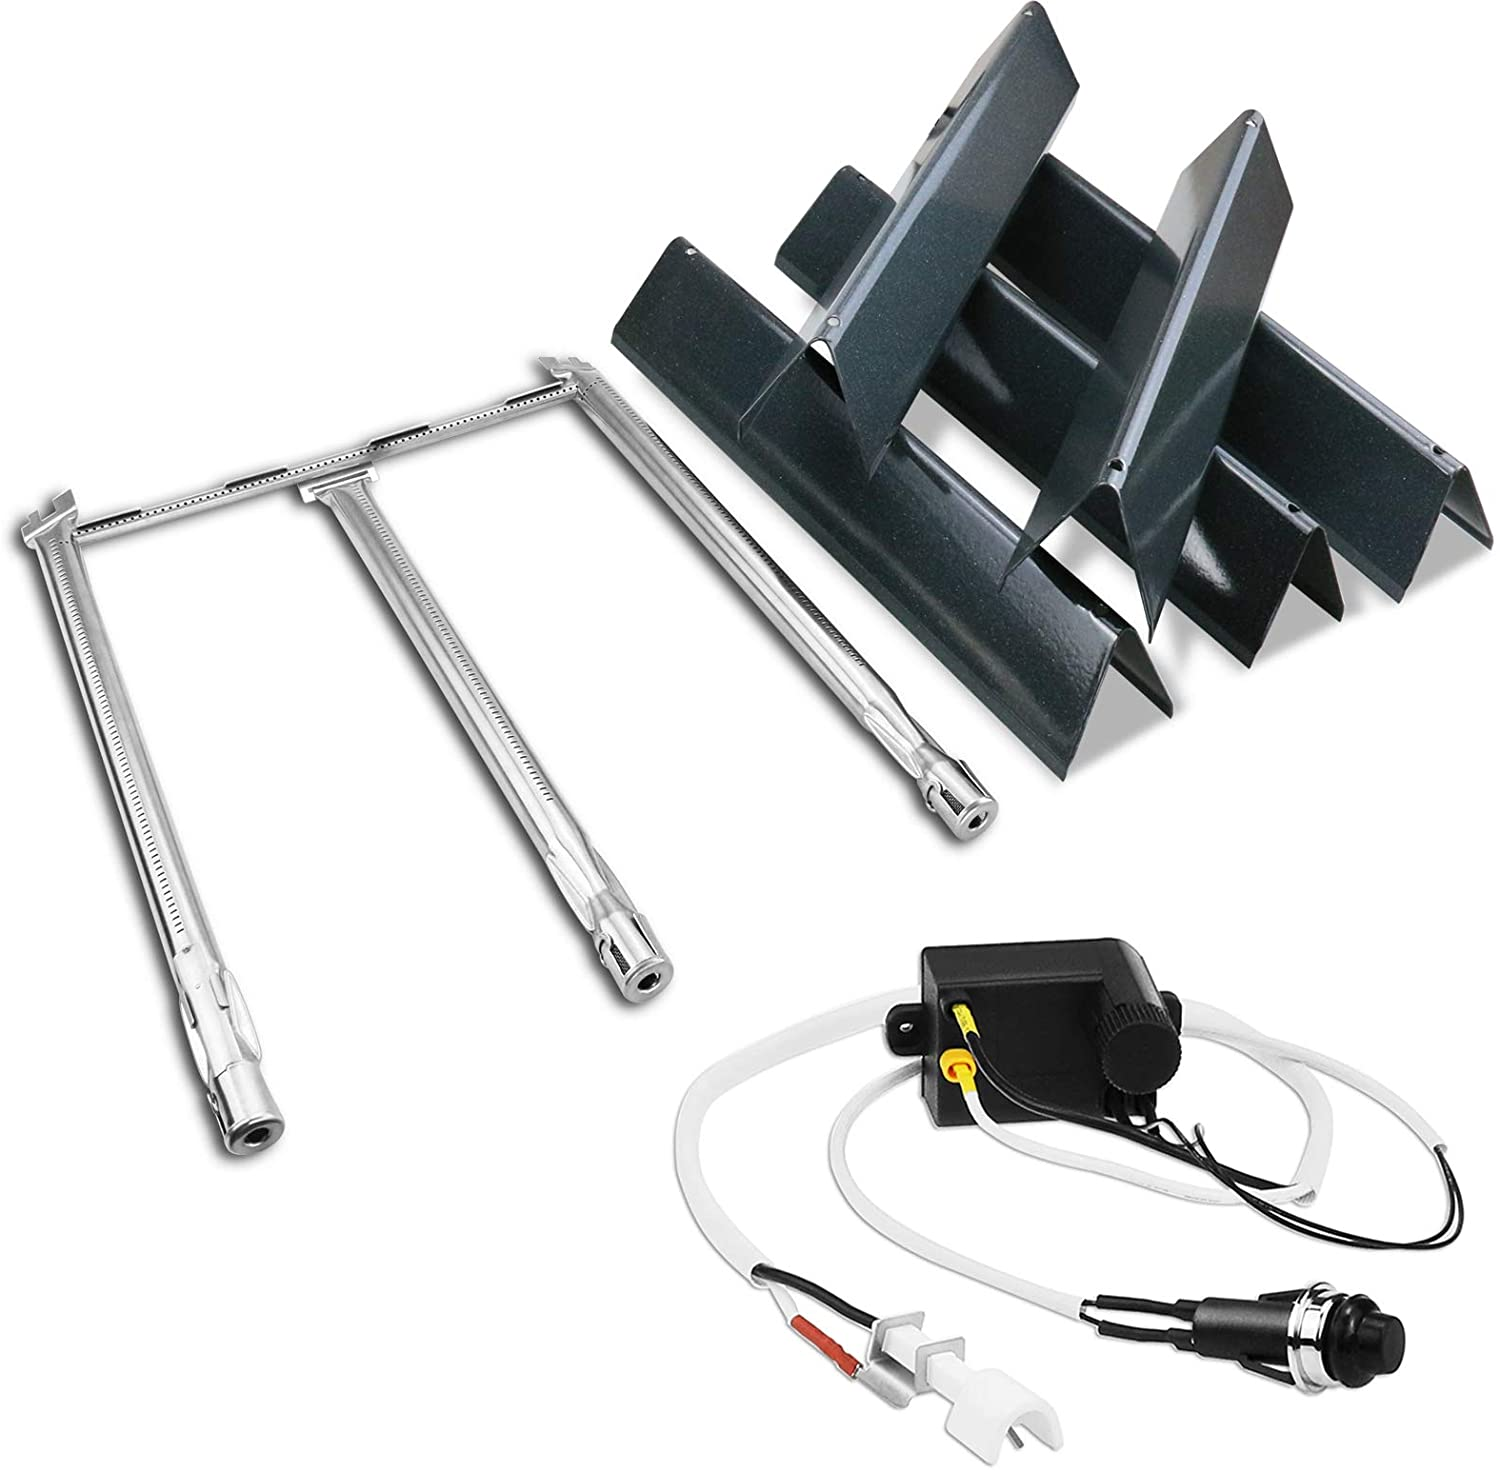 Utheer 7636 Flavor Bars 15.3 Inches 69787 Burner Tube 18 Inches and Ignitor Wire Kit /& Ignition Electrode for Weber Spirit 300 Series Spirit E310 S310 E320 S320 E//S330 with Front Mounted Control